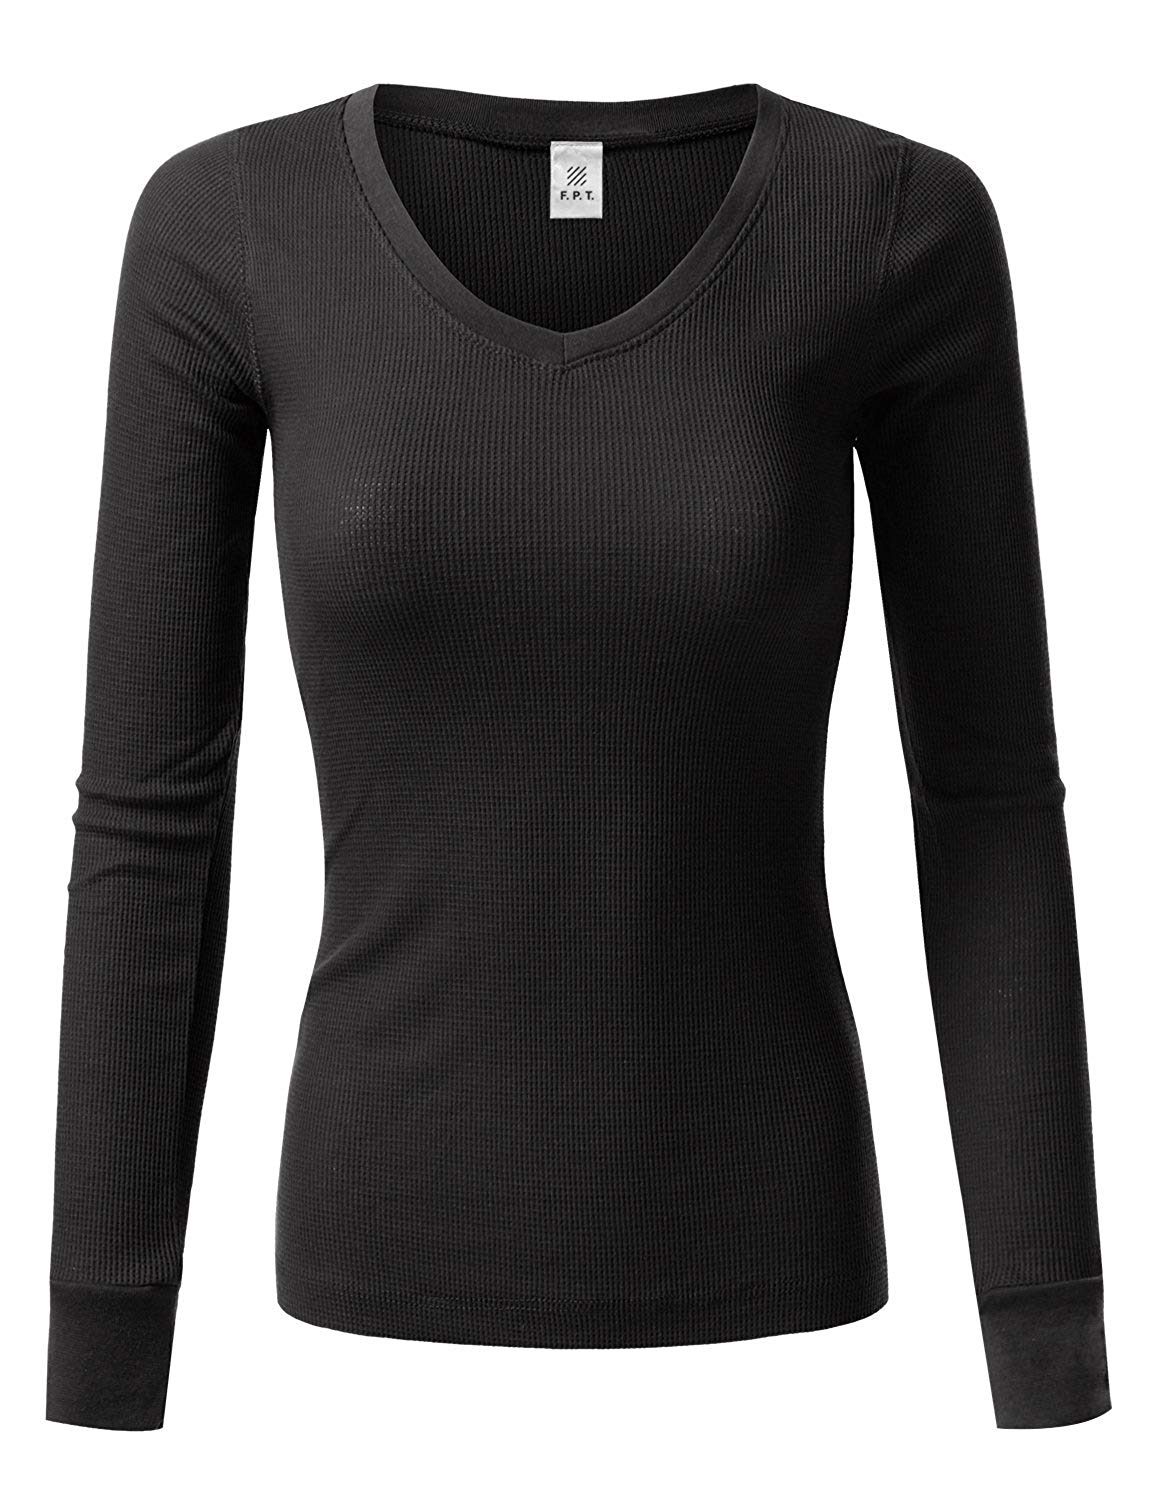 afa0bb76 Get Quotations · Fifth Parallel Threads FPT Women's Basic Crewneck and  V-Neck Long Sleeve Ribbed Thermal Top